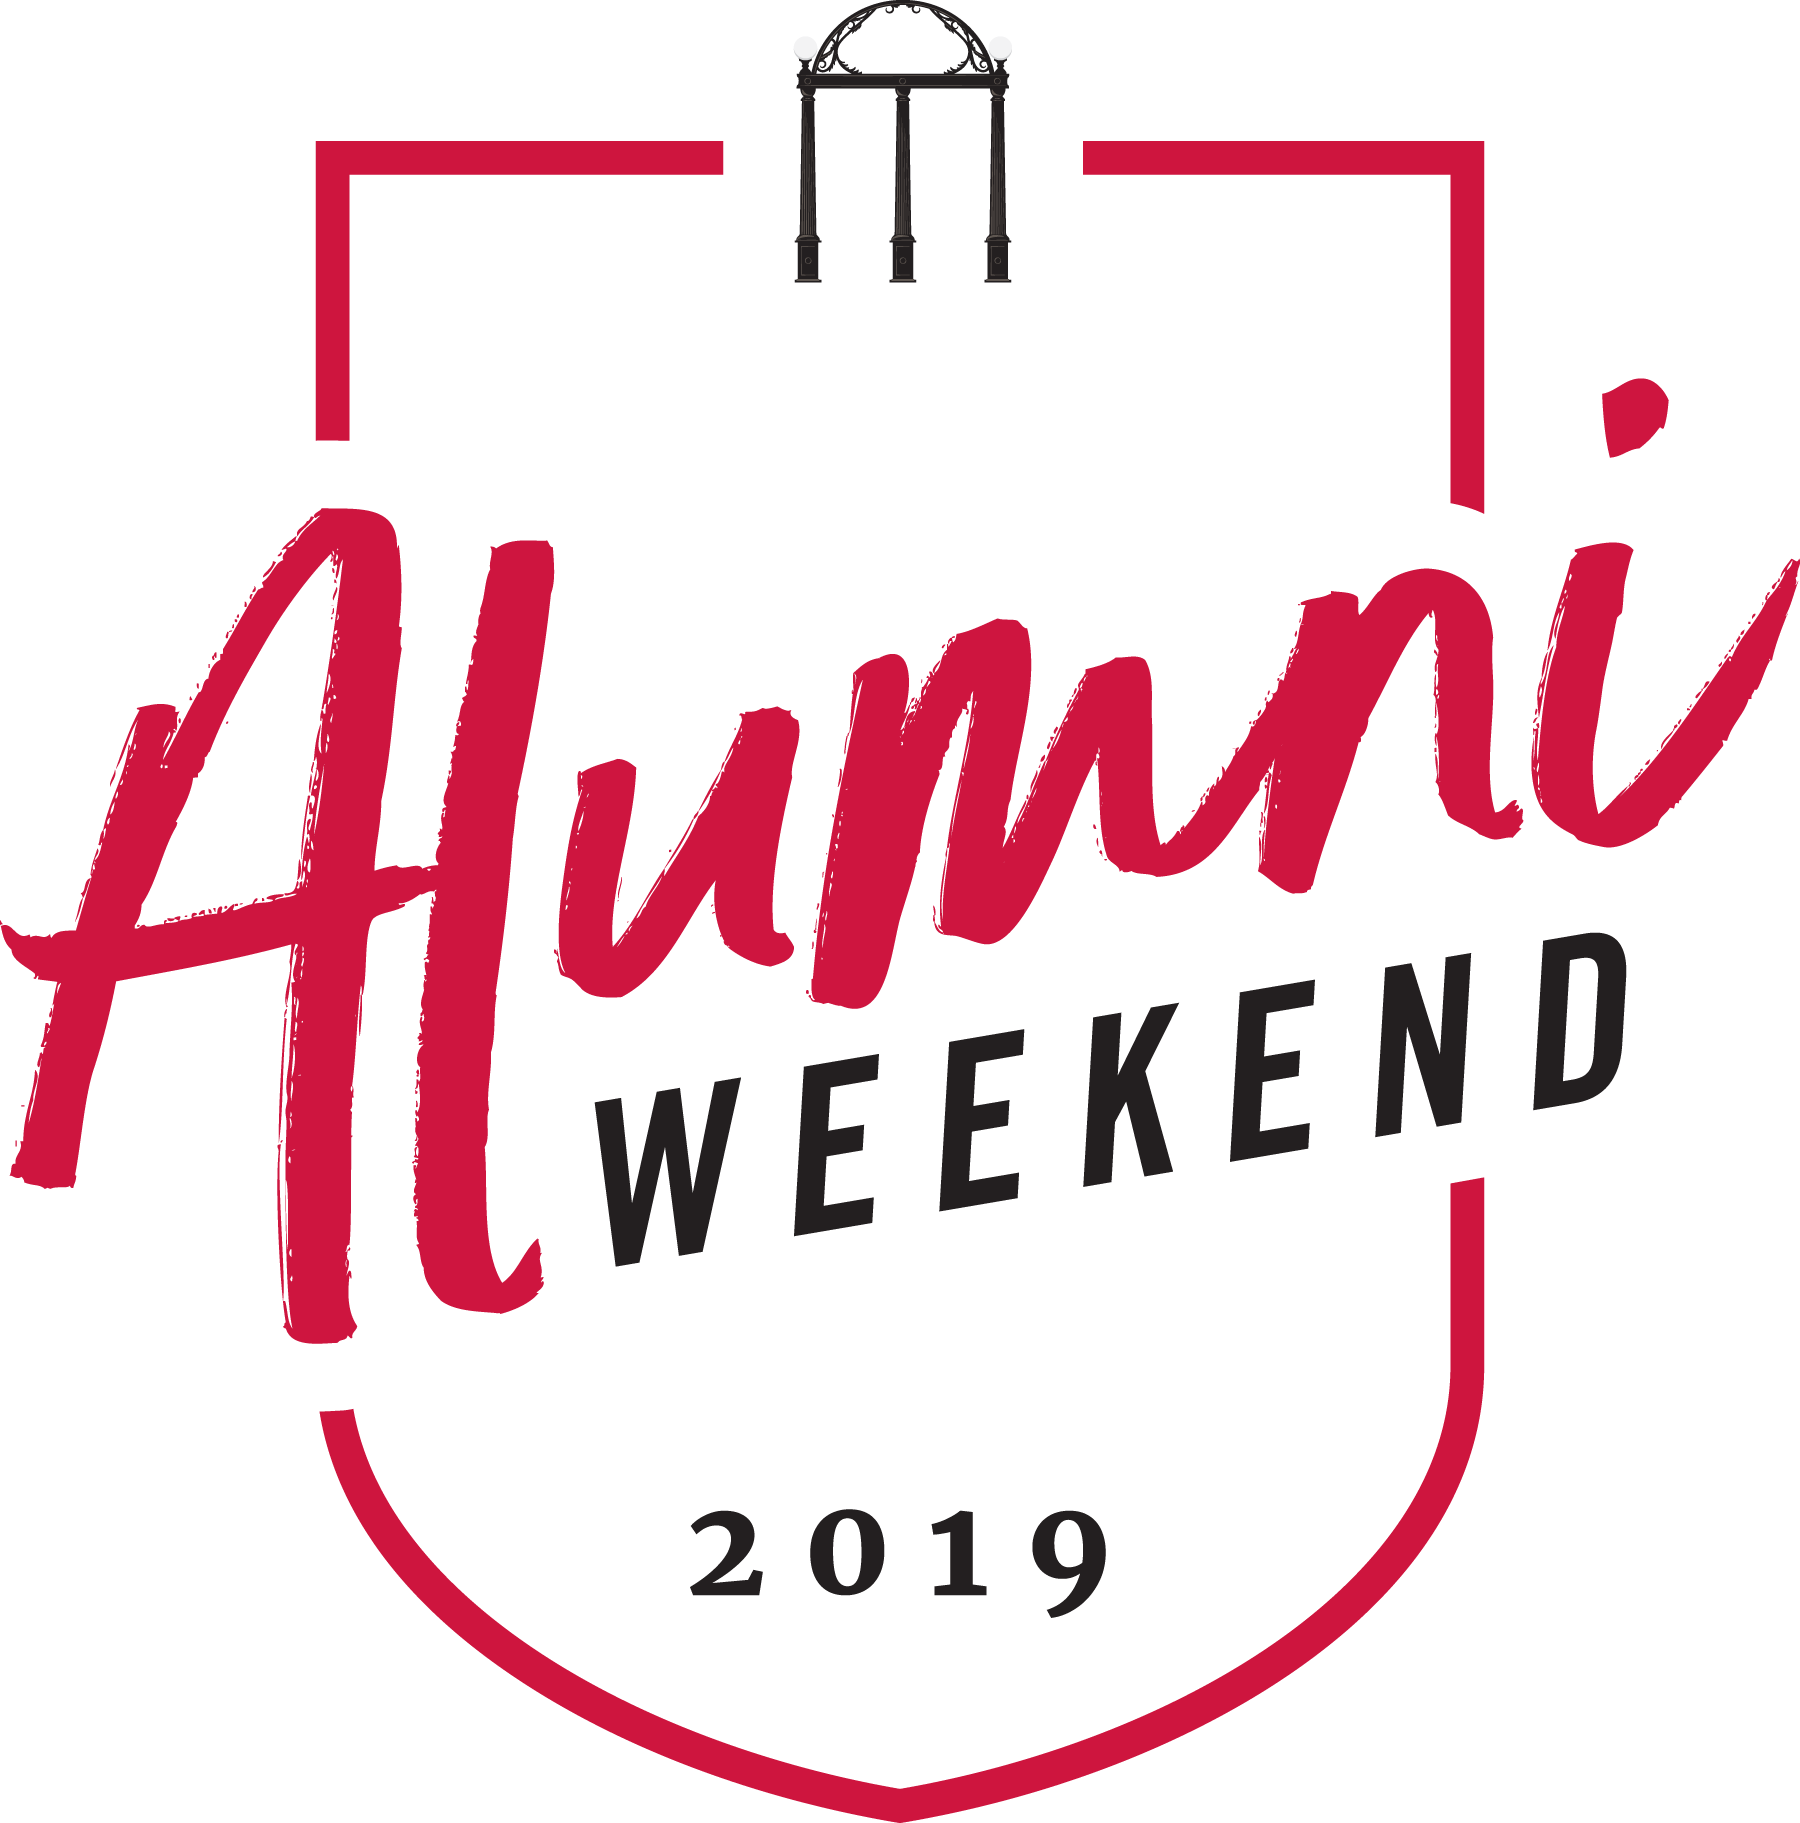 Week End Alumni Weekend At Uga Relive Your Glory Glory Days